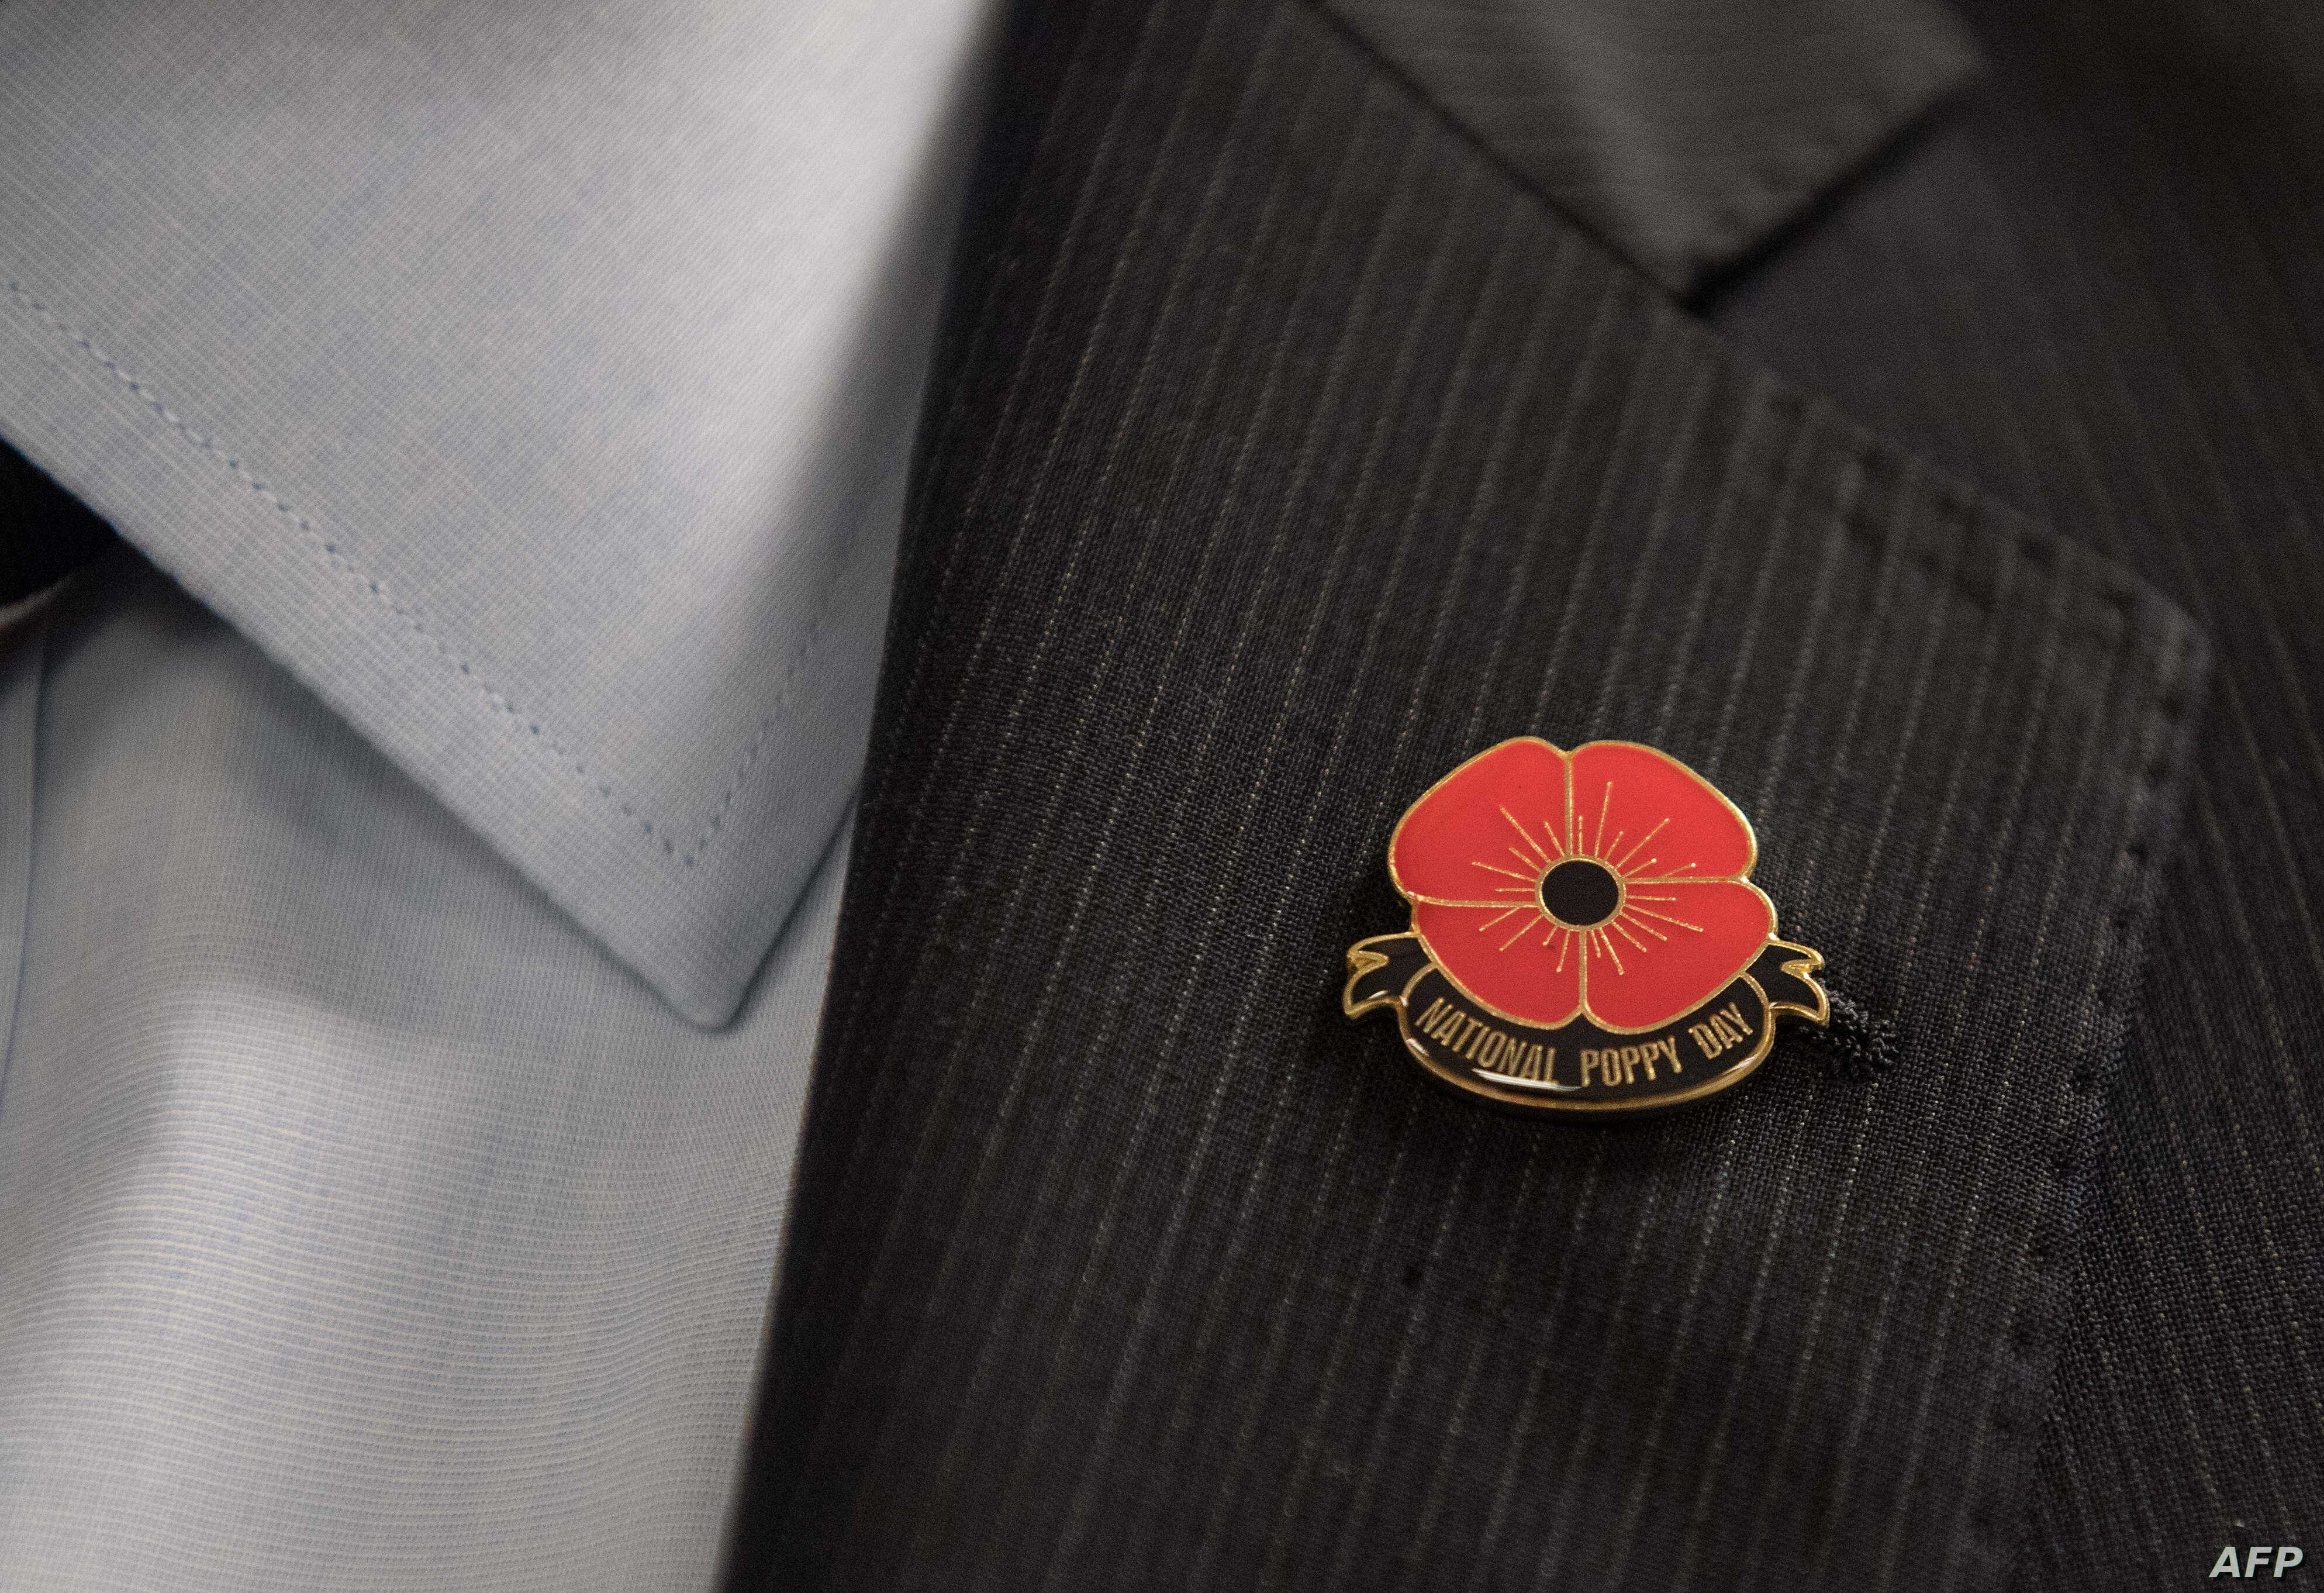 US Marks First National Poppy Day | Voice of America - English